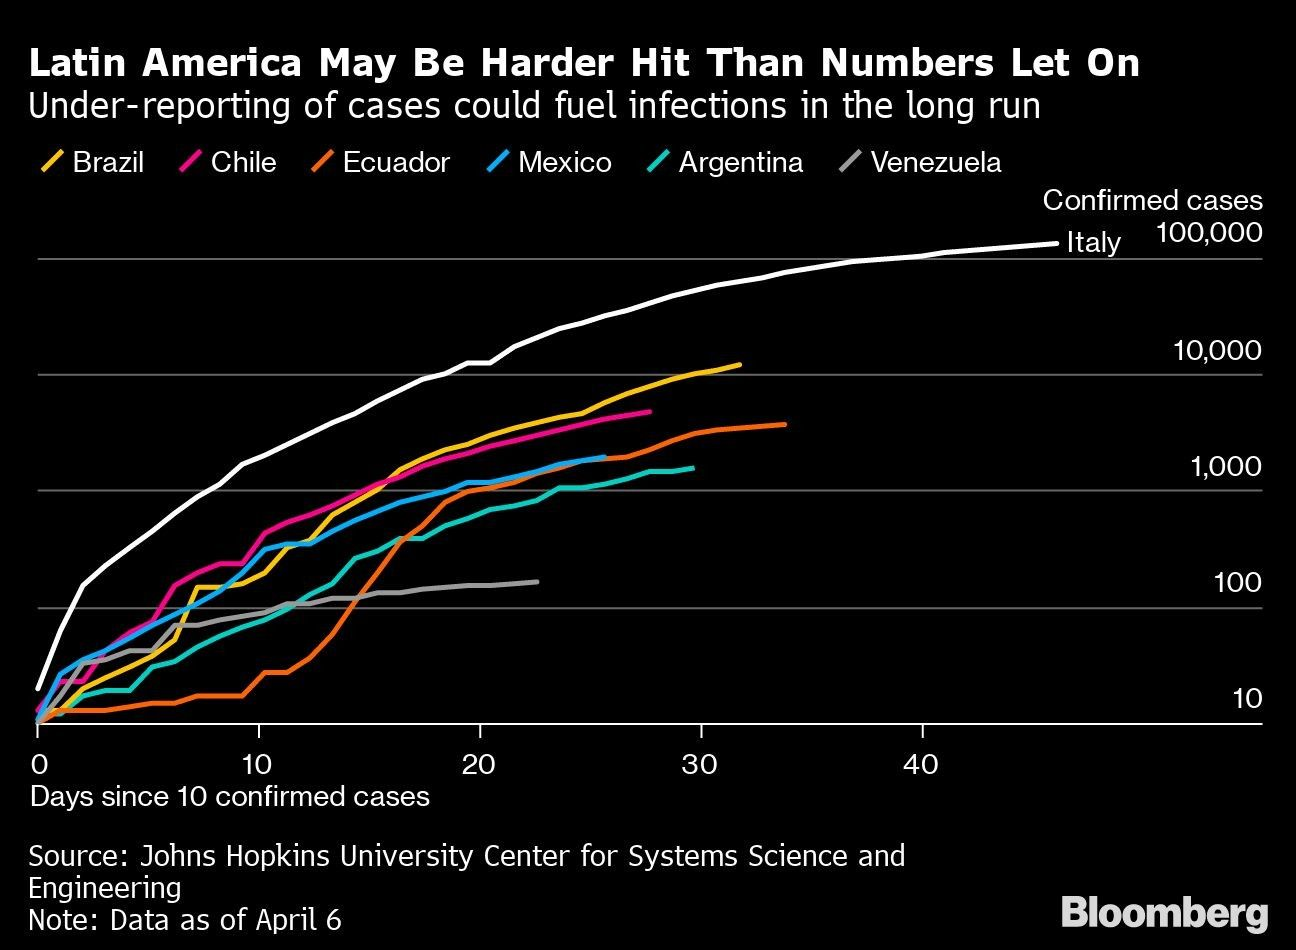 Latin America May Be Harder Hit Than Numbers Let On